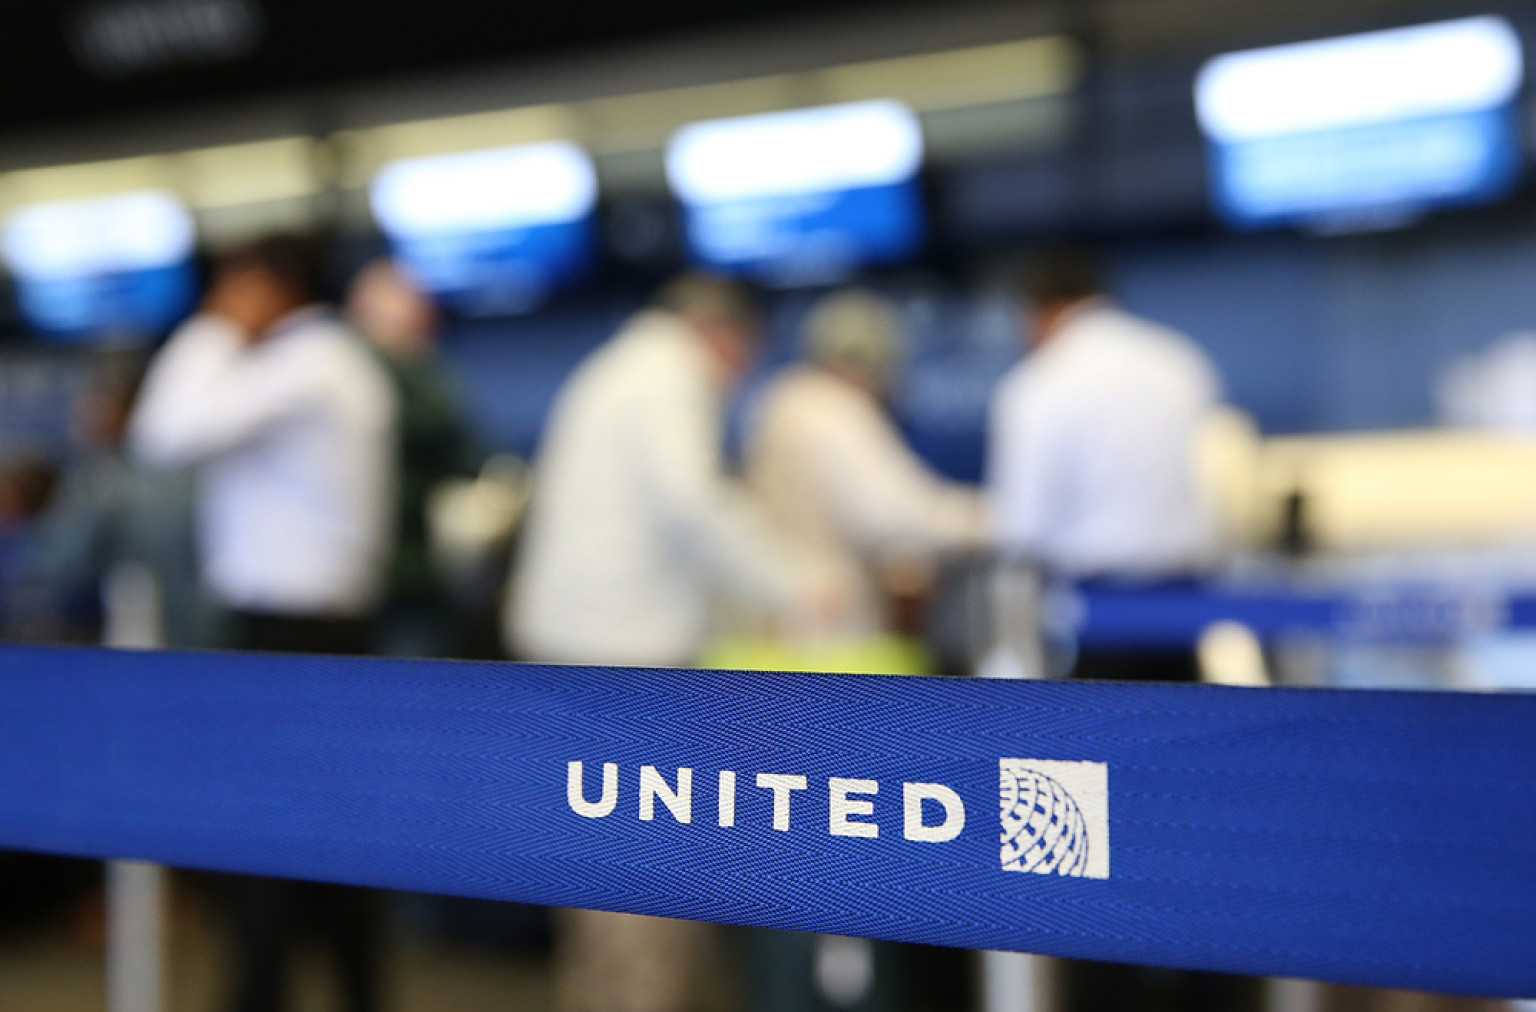 United Airlines' Frequent Flyer App has been hacked | 0xicf